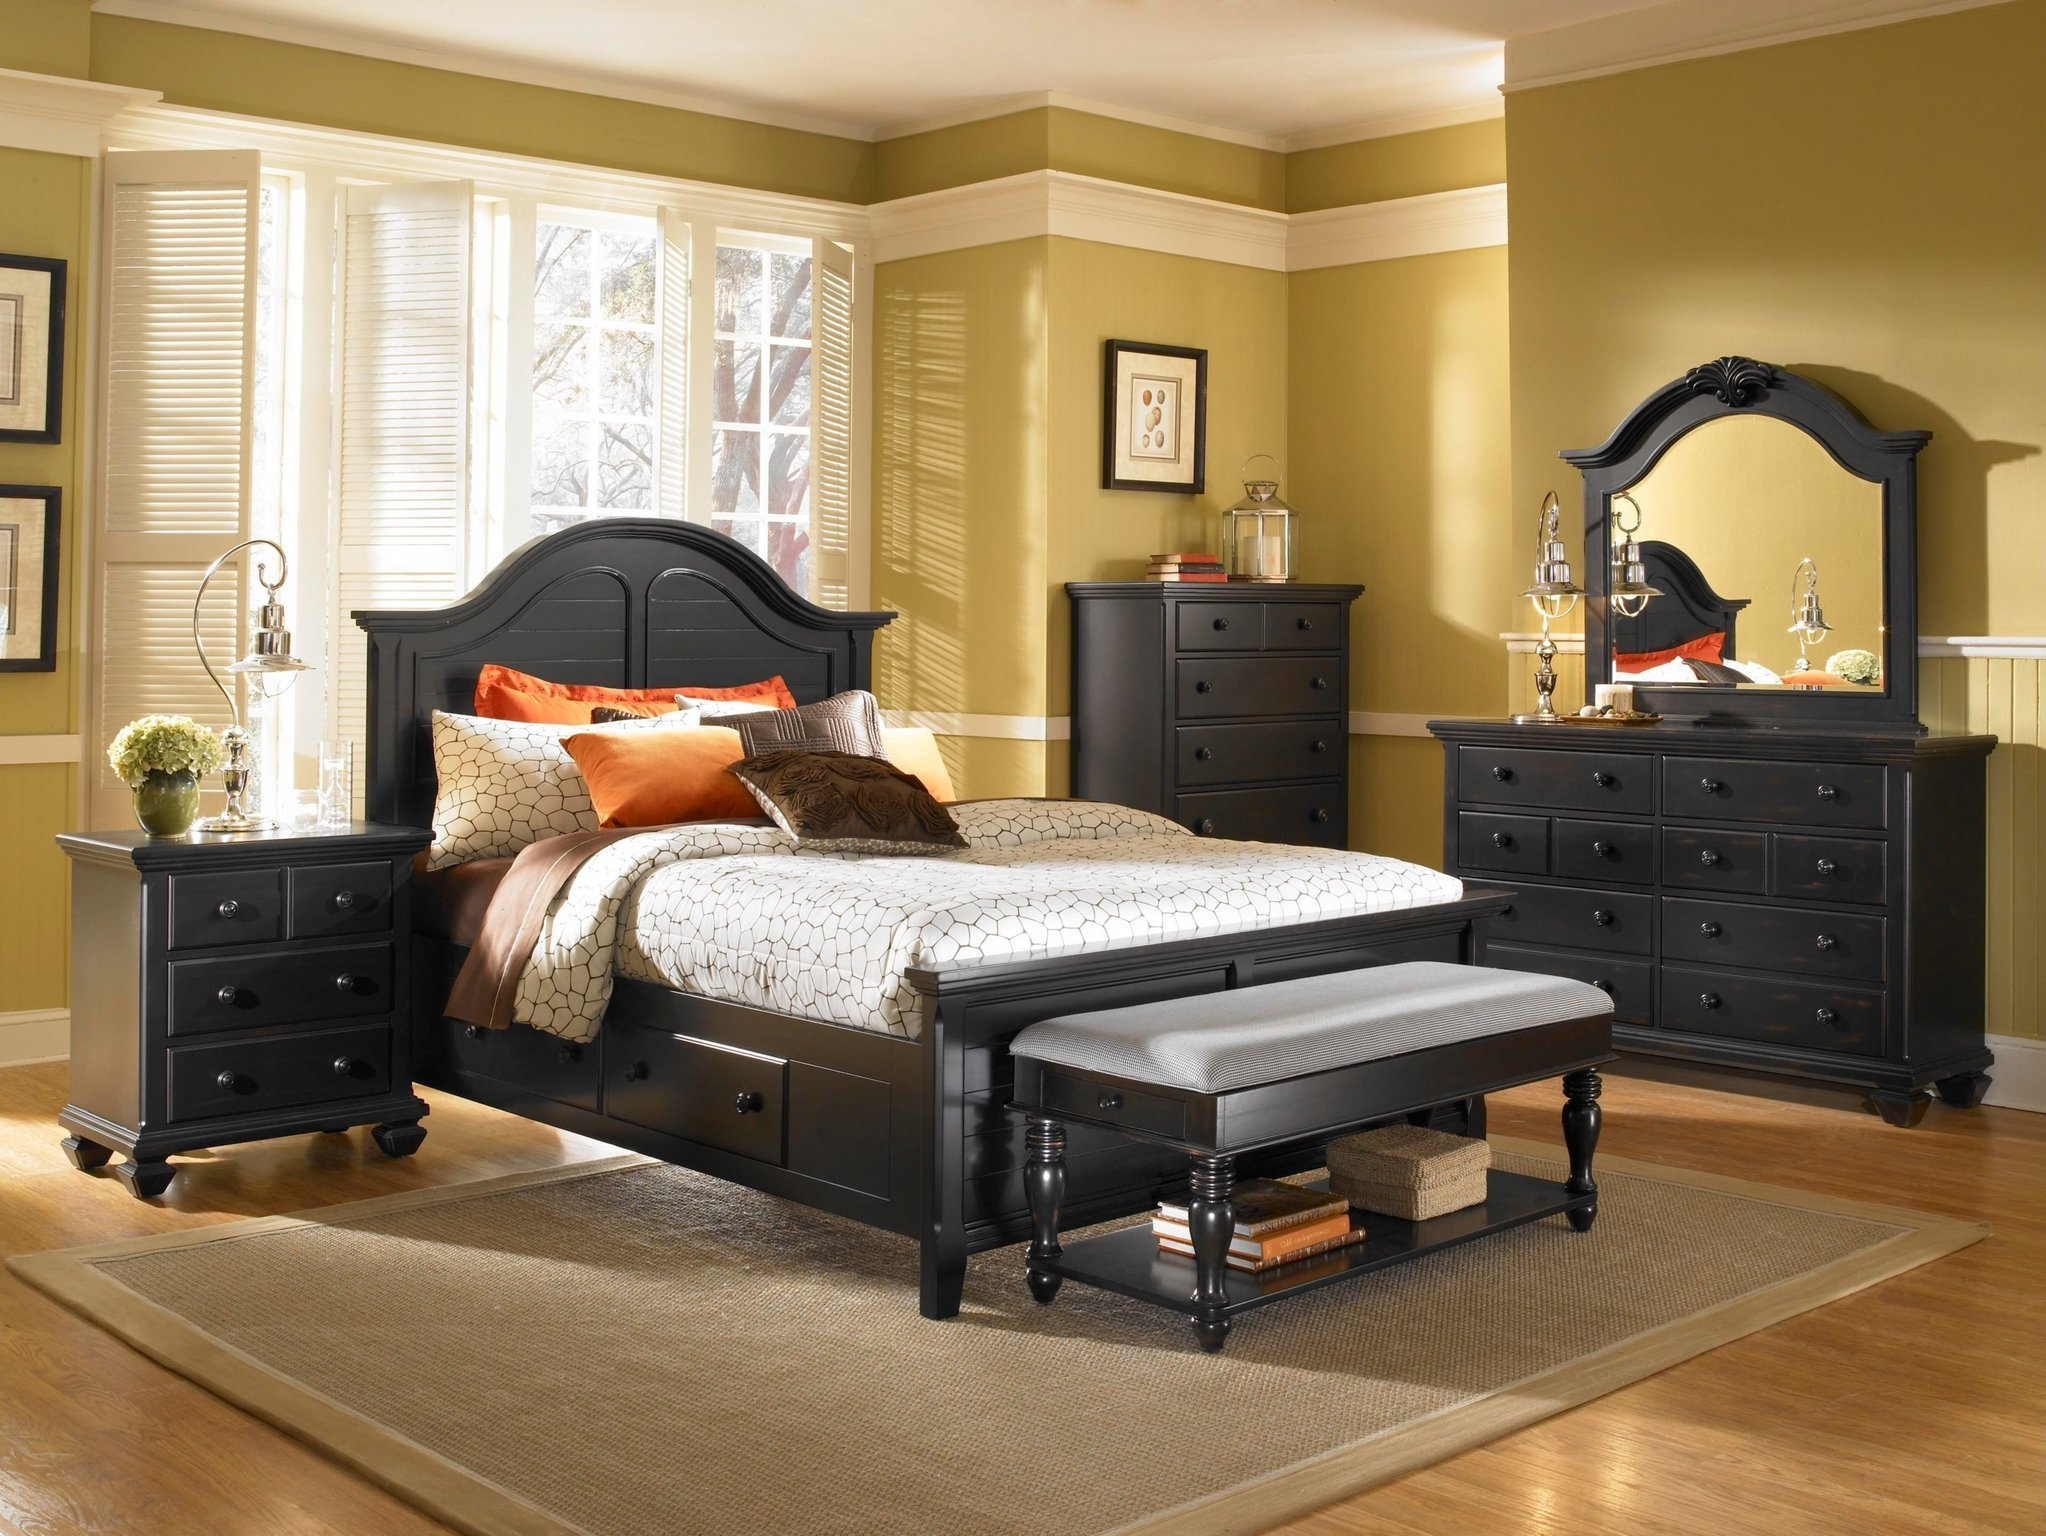 Best Espresso Country Style Bedroom Collection Panel Bed Storage Drawers Bedroom Furniture With Pictures